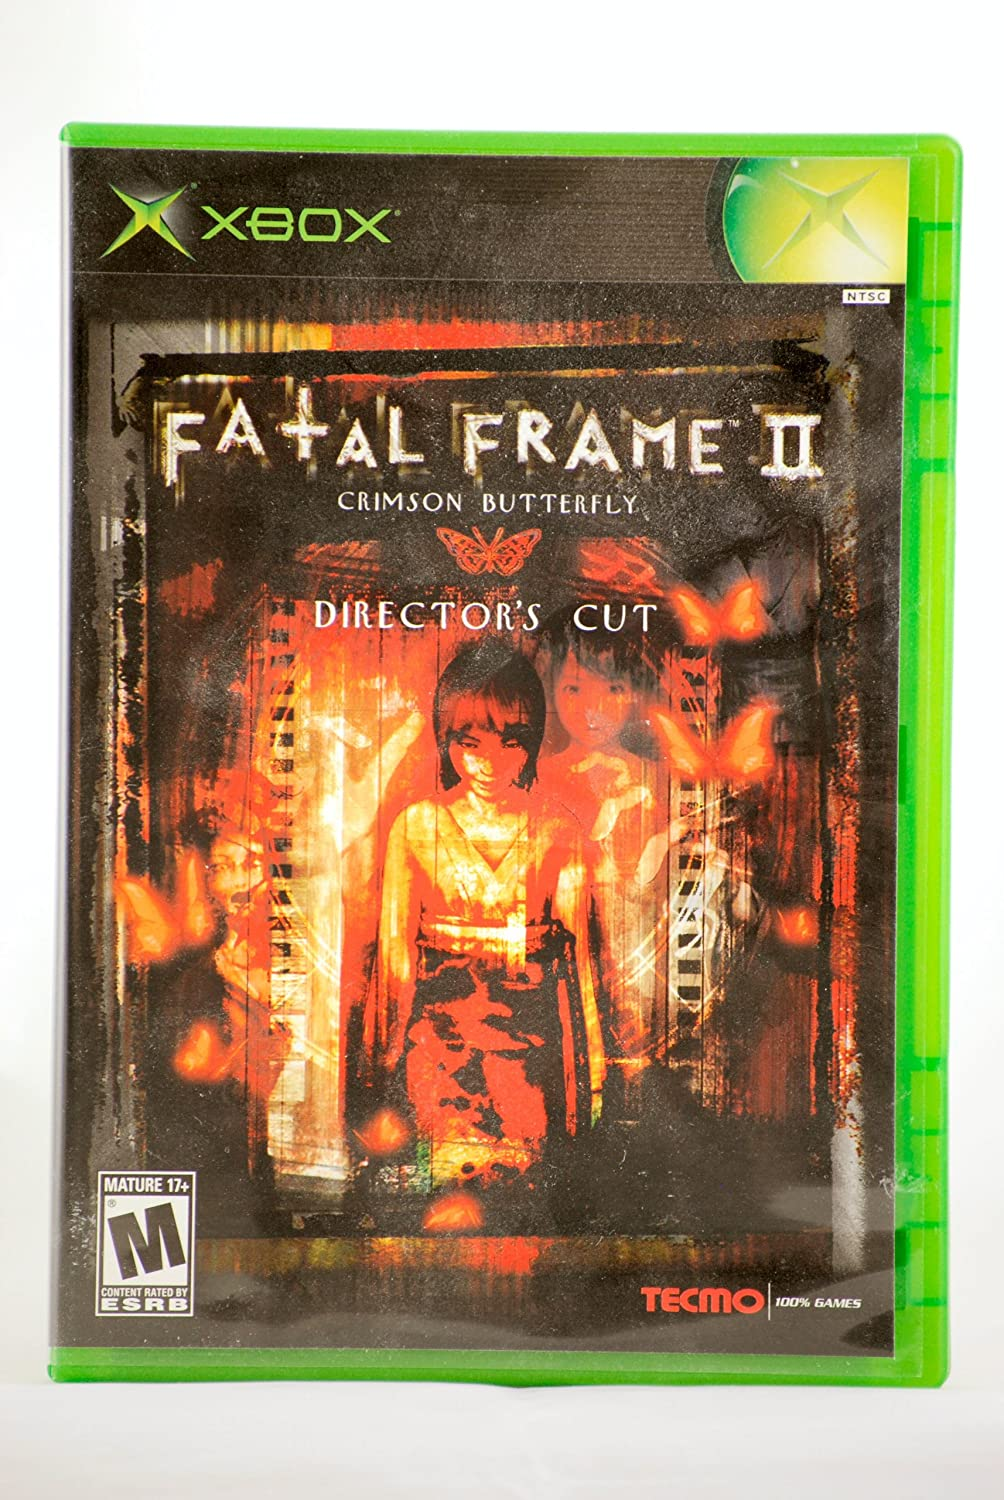 Amazon.com: Fatal Frame 2 - Xbox: Artist Not Provided: Video Games